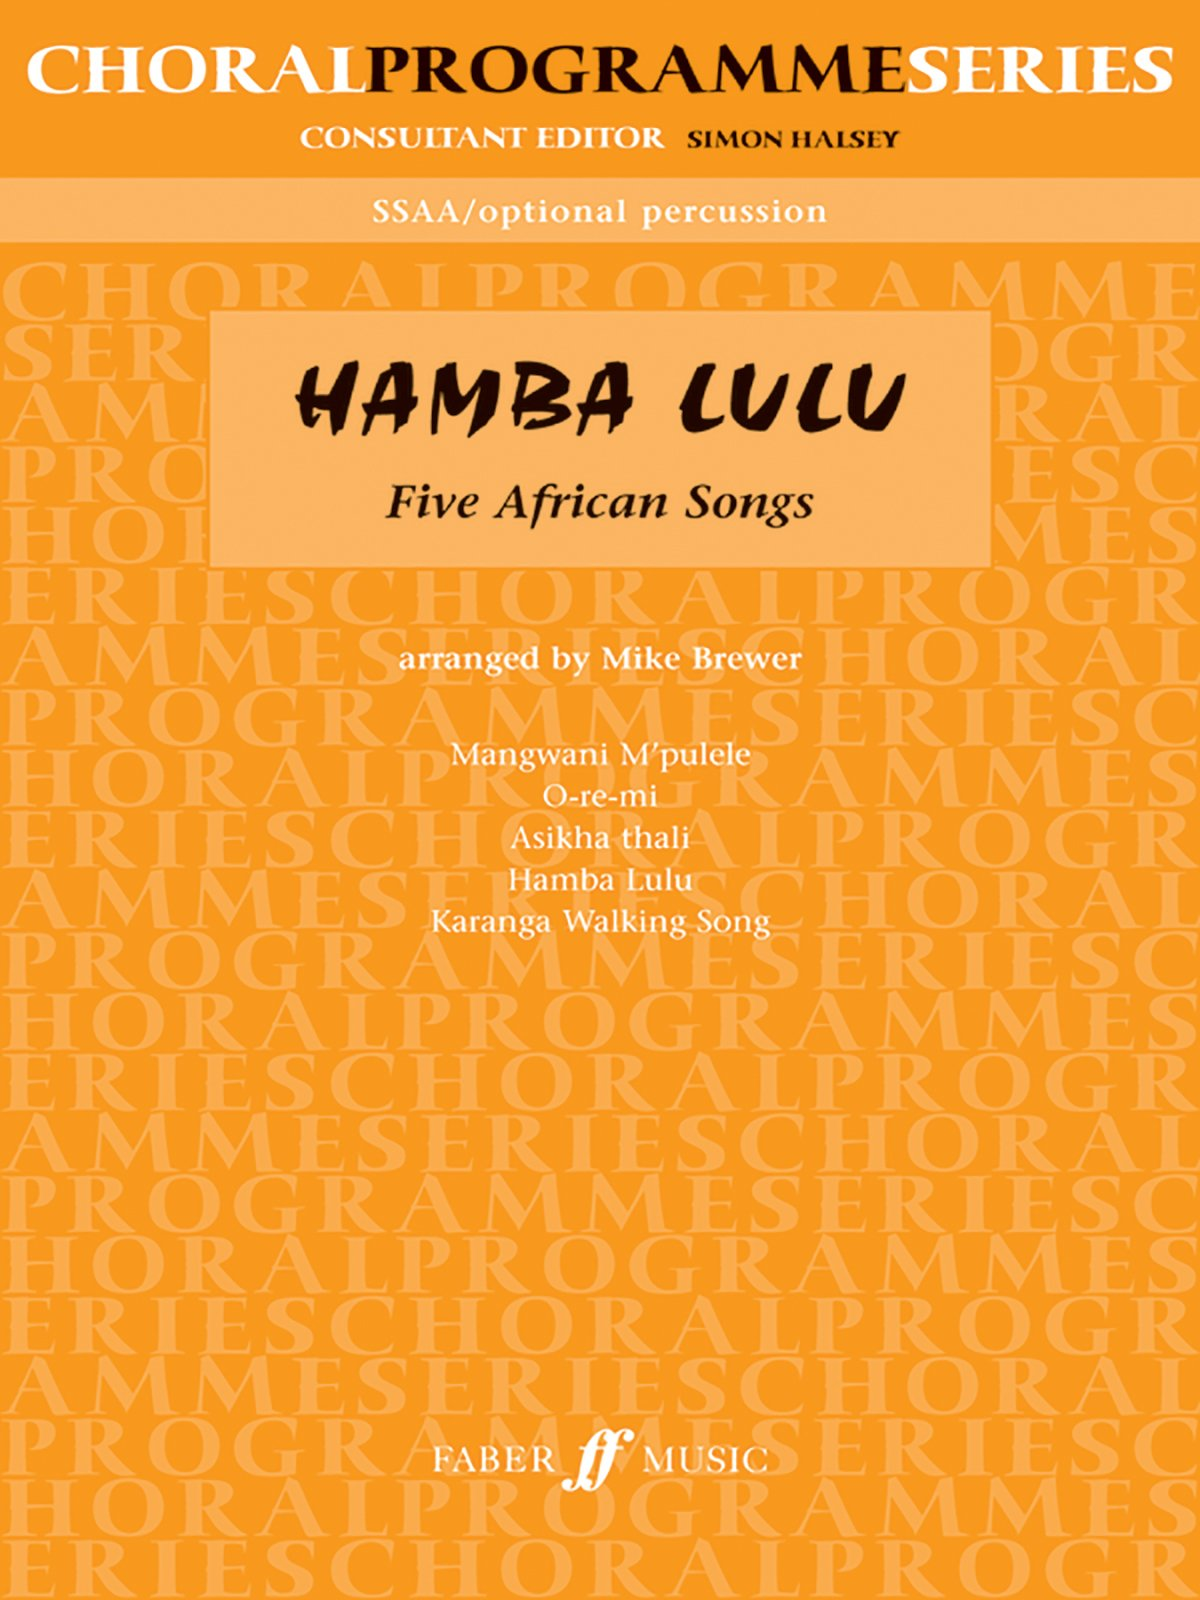 Hamba Lulu: Five African Songs (Faber Edition: Choral Programme Series) pdf